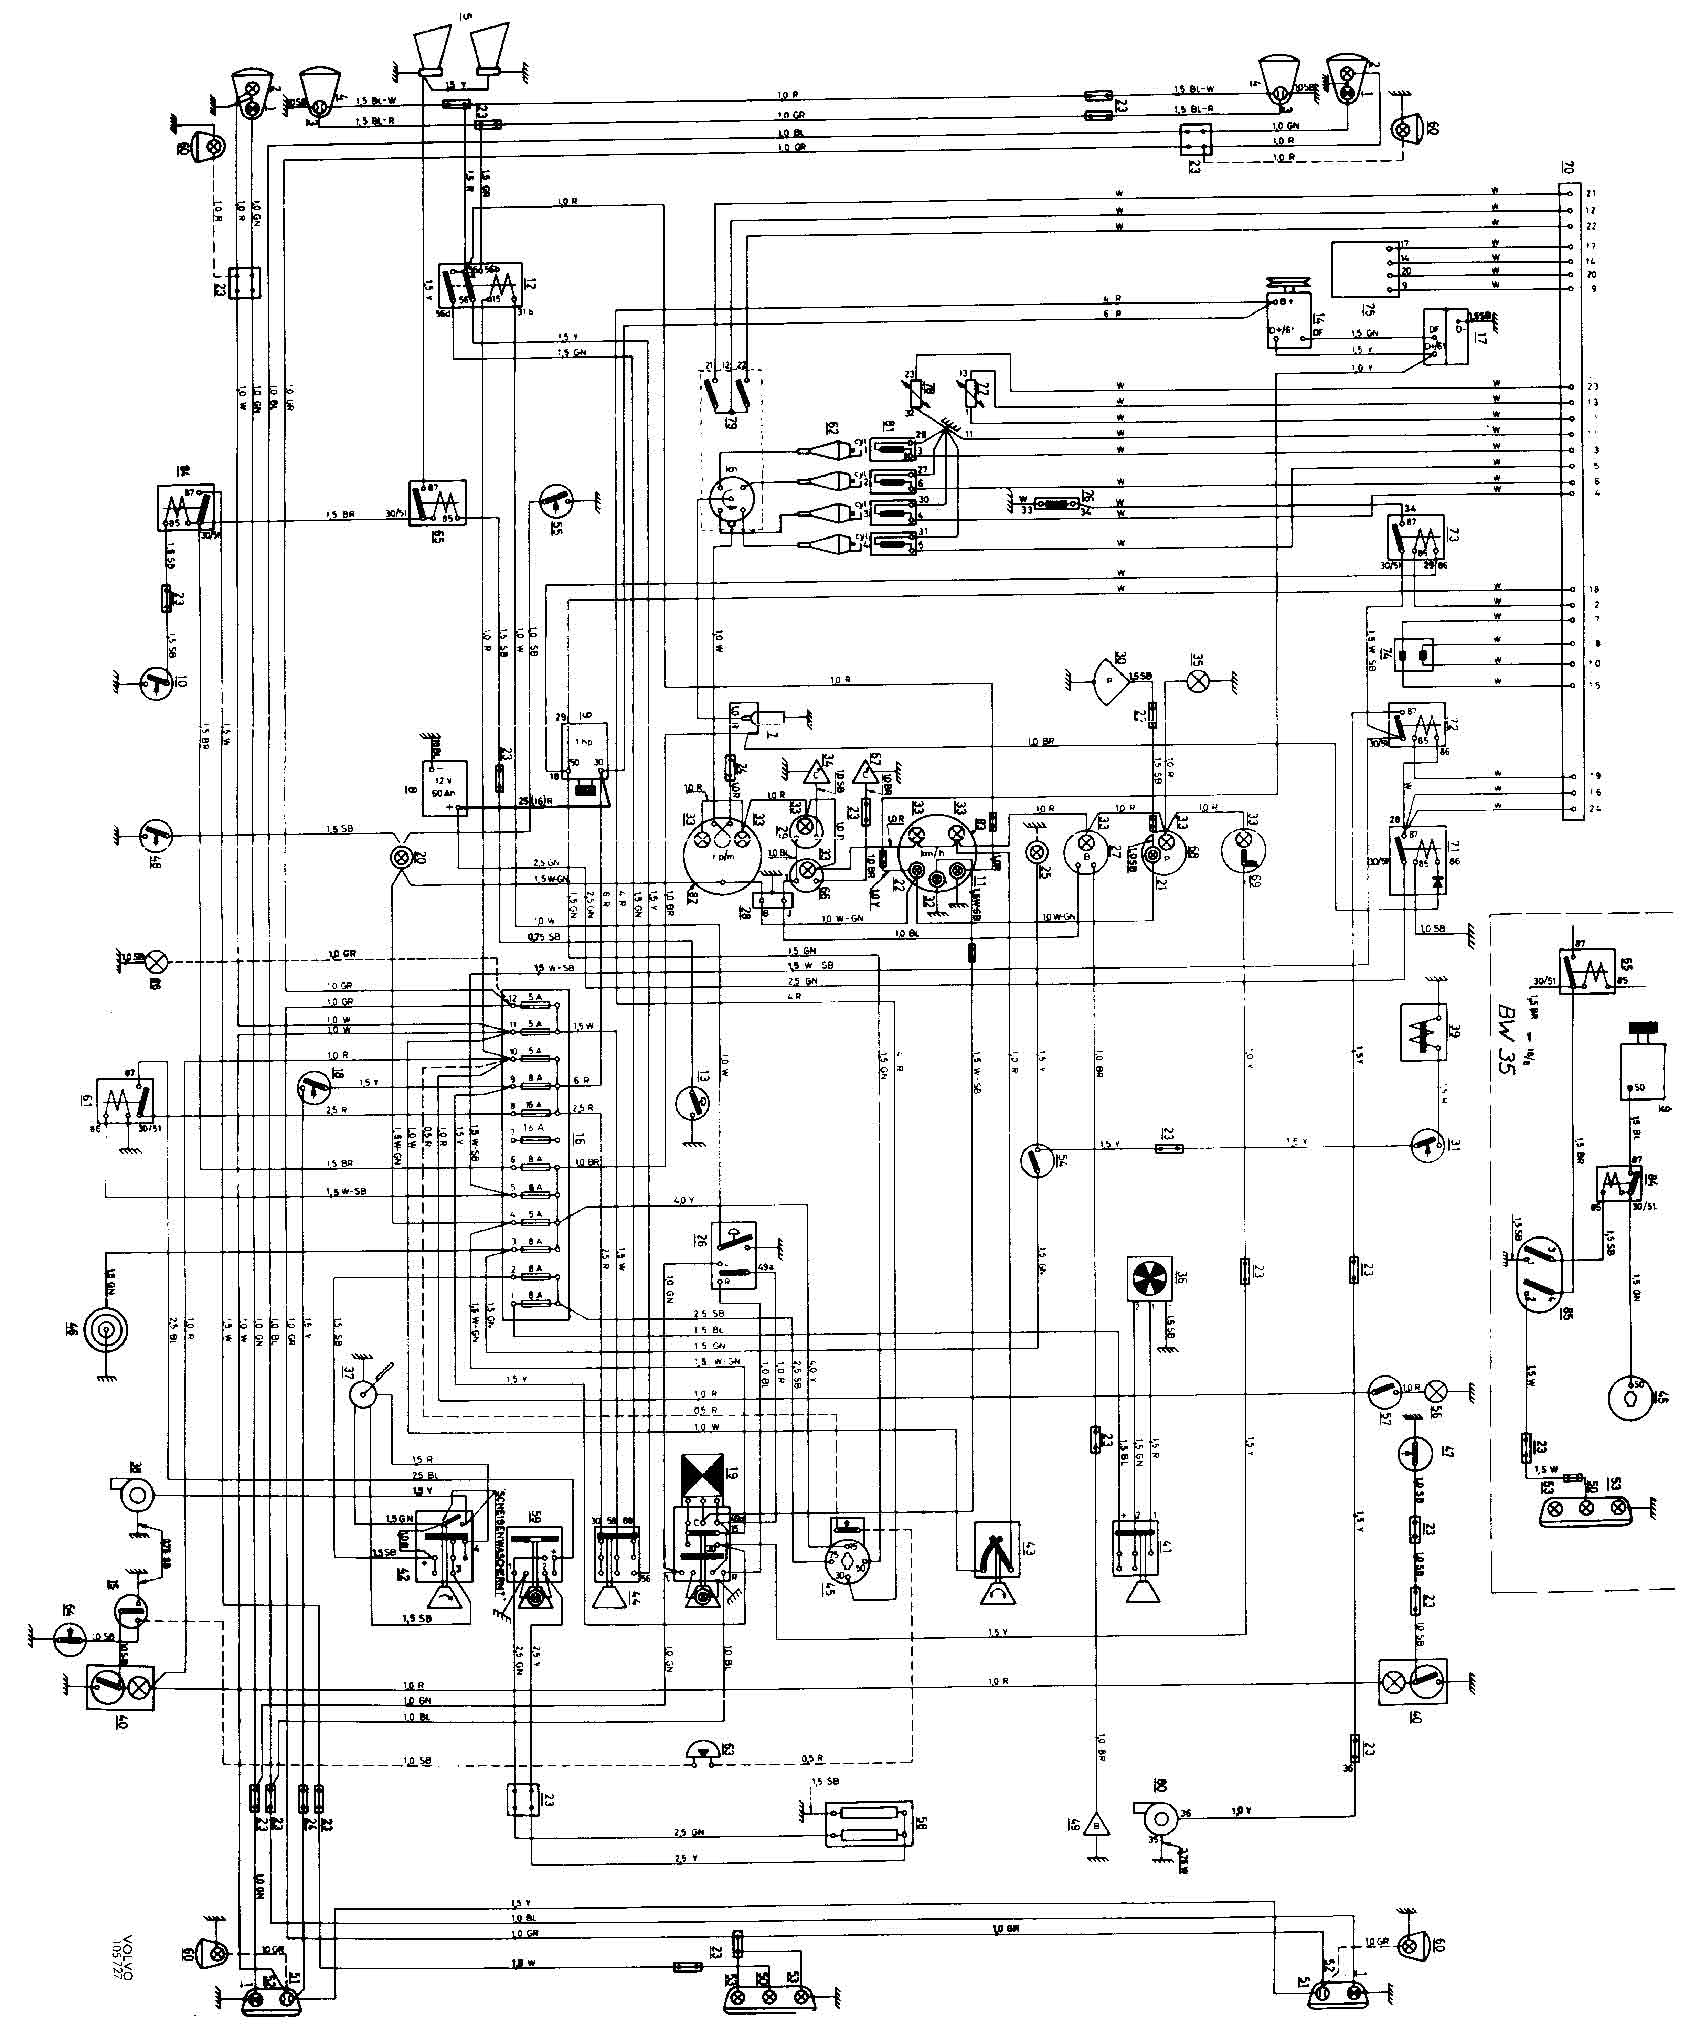 1800E Wiring Diagram 100 [ volvo 850 fog light wiring diagram ] buy perodua axia Volvo 850 Engine Diagram at gsmportal.co